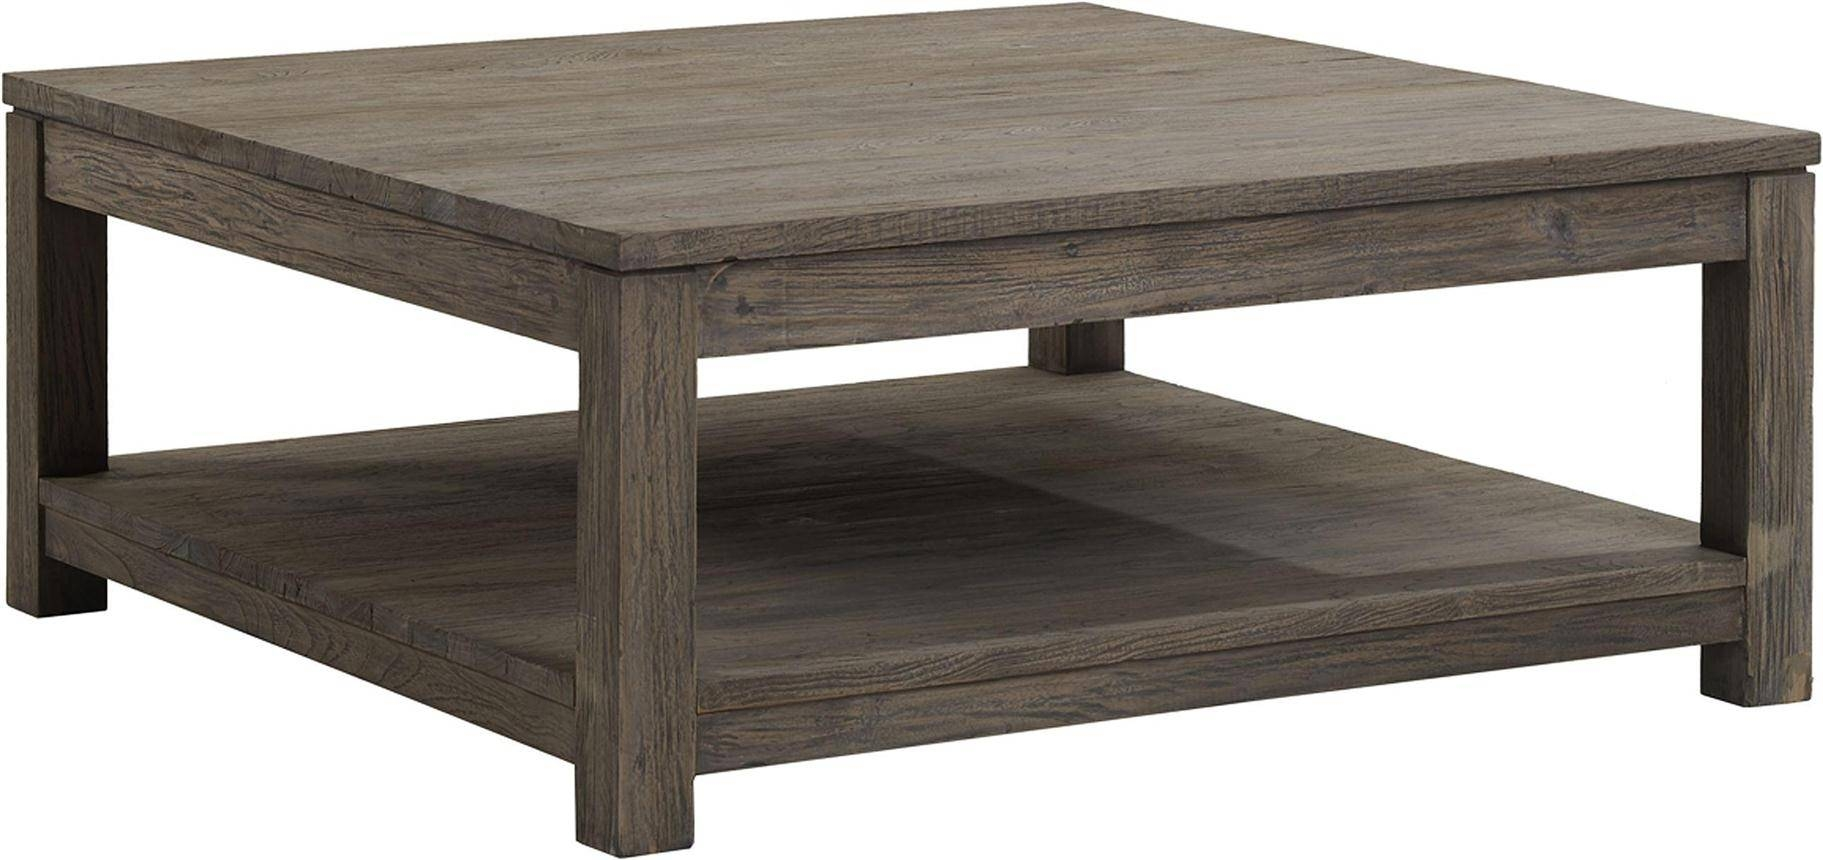 Square Wood Coffee Table For Natural Ambience Of Living Room in Square Wooden Coffee Table (Image 12 of 15)